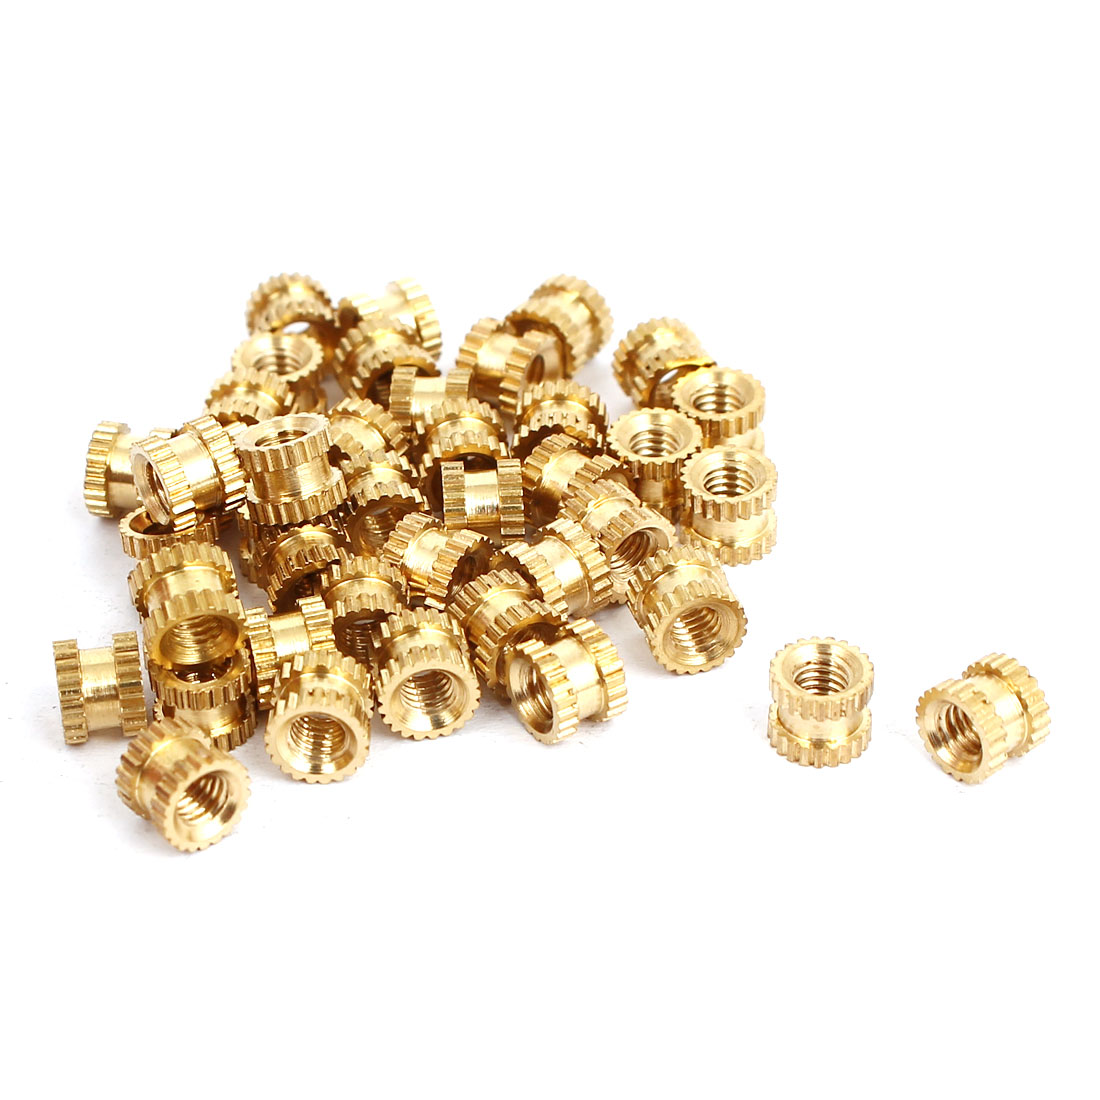 M3x4mmx5mm Female Threaded Brass Knurled Insert Embedded Nuts Gold Tone 40pcs